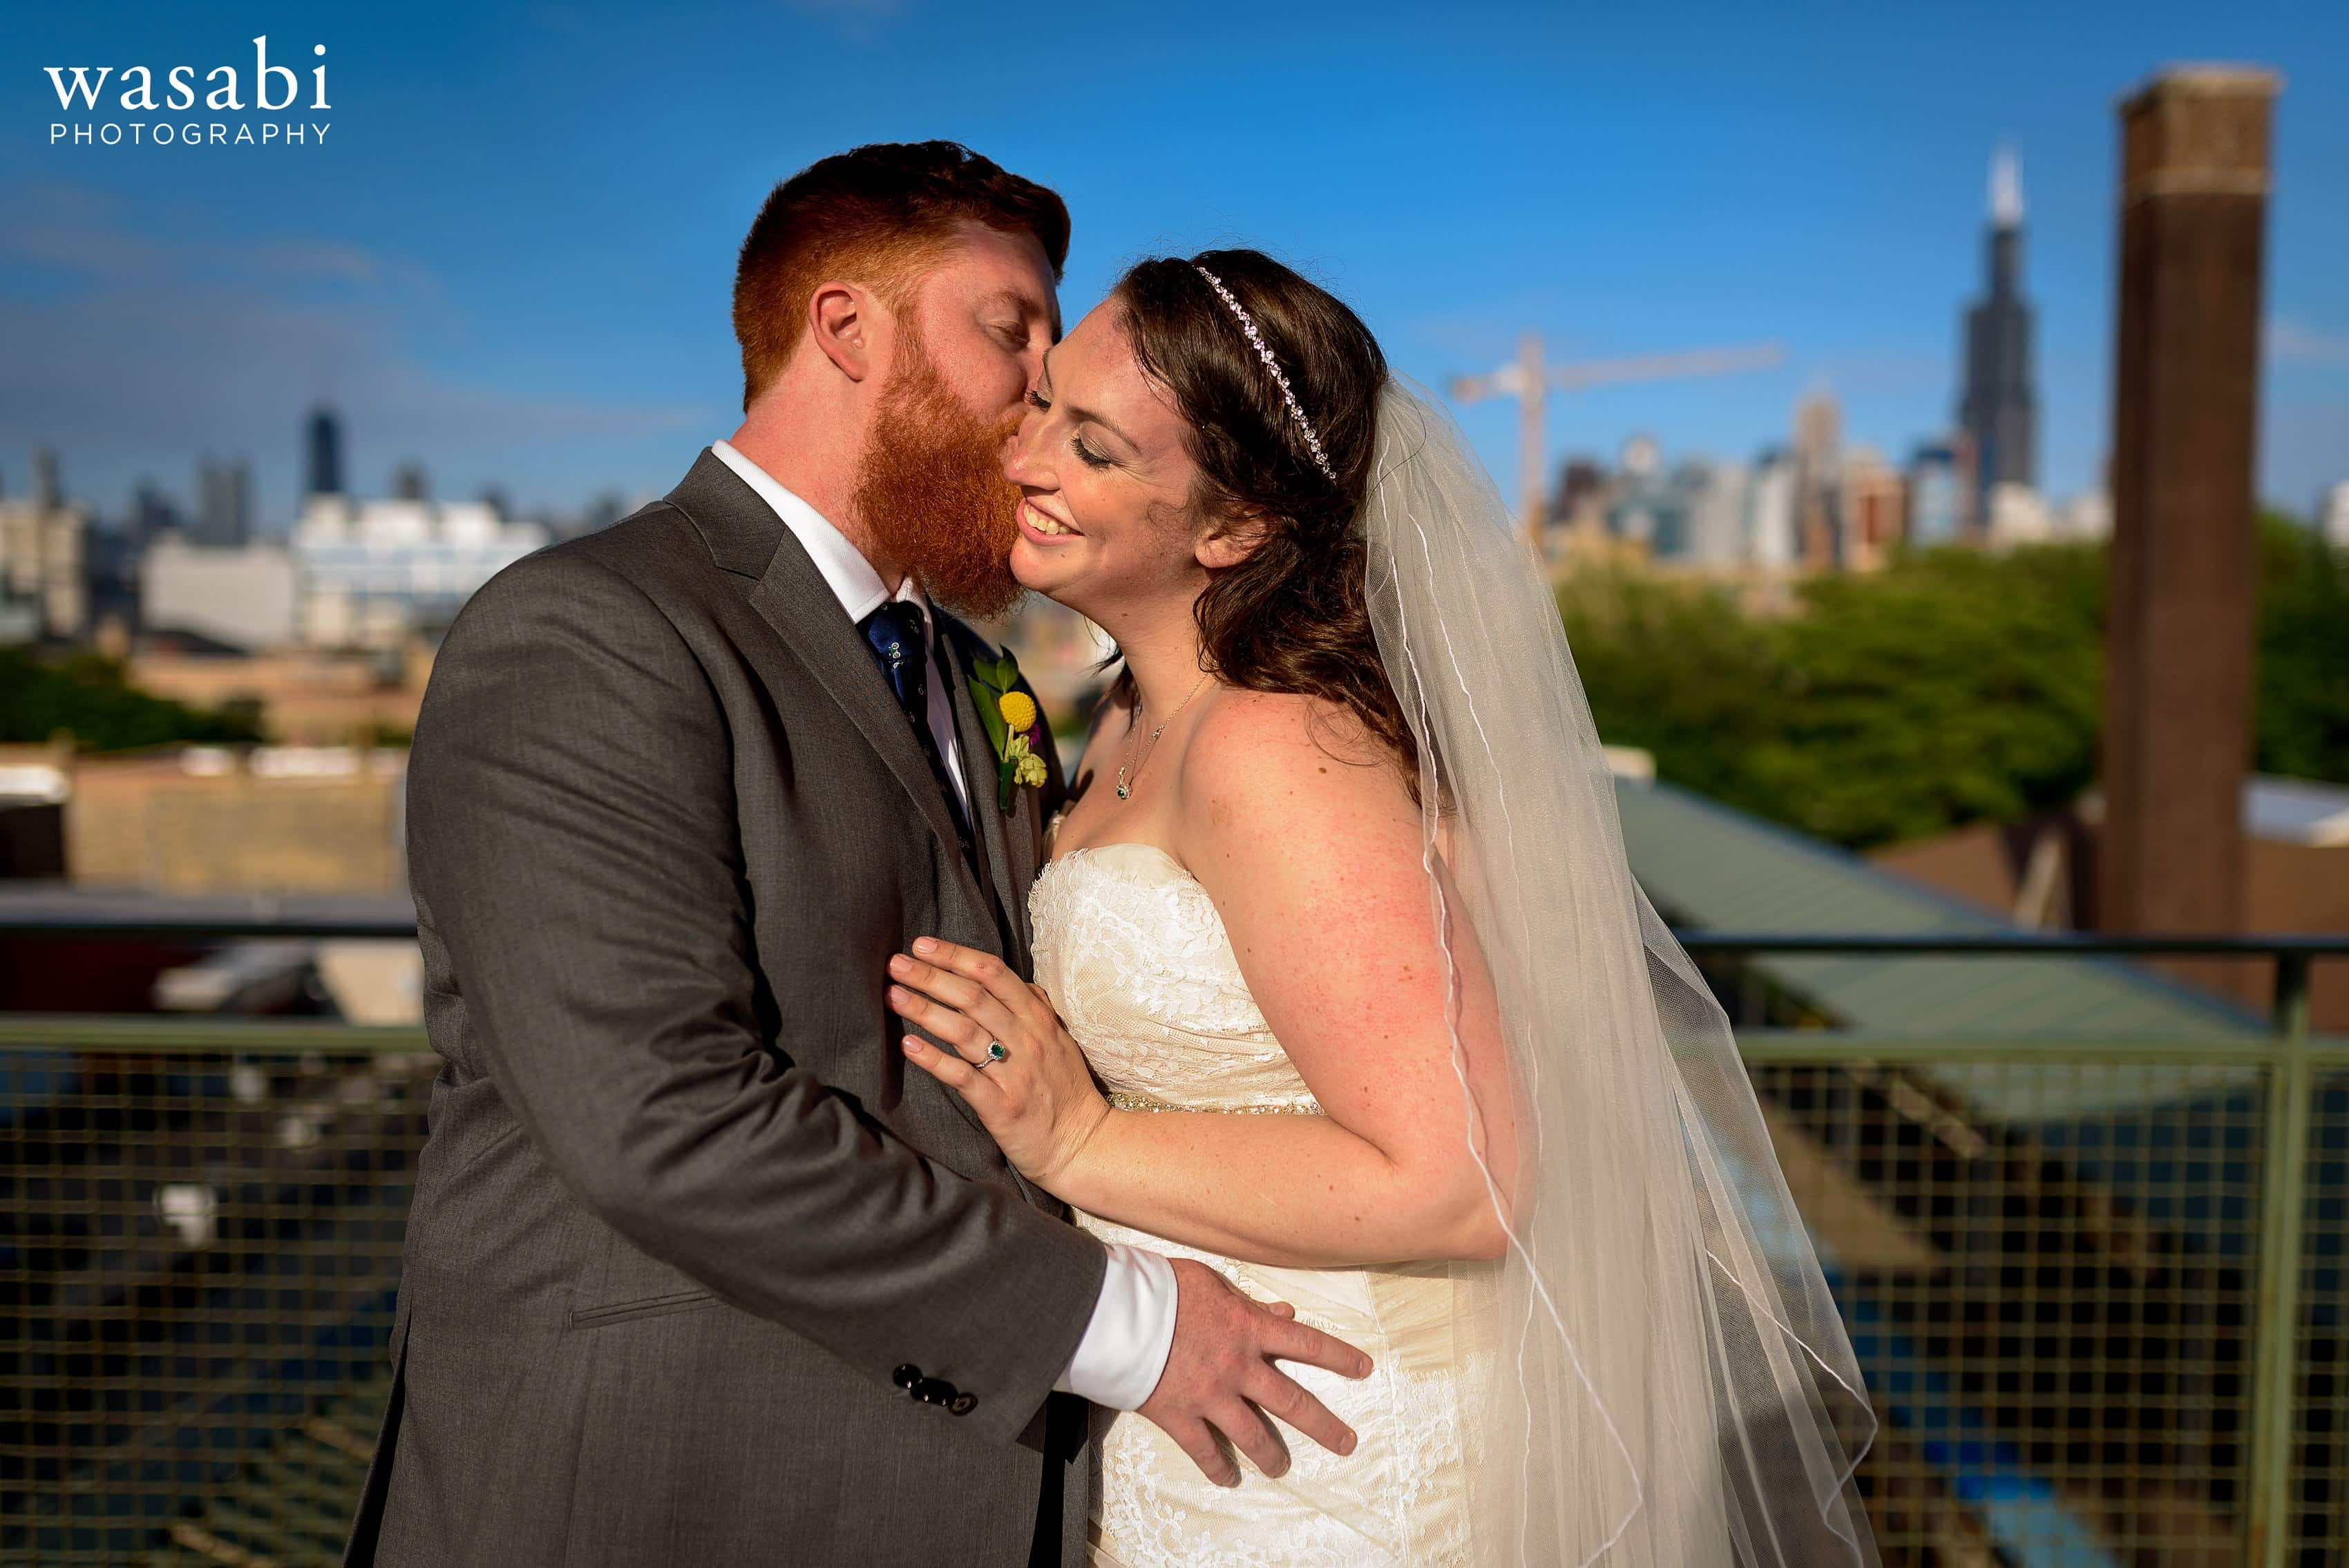 A bride and groom pose for a portrait at the Ashland Green Line Station in Chicagos West Loop neighborhood after their Loft on Lake wedding